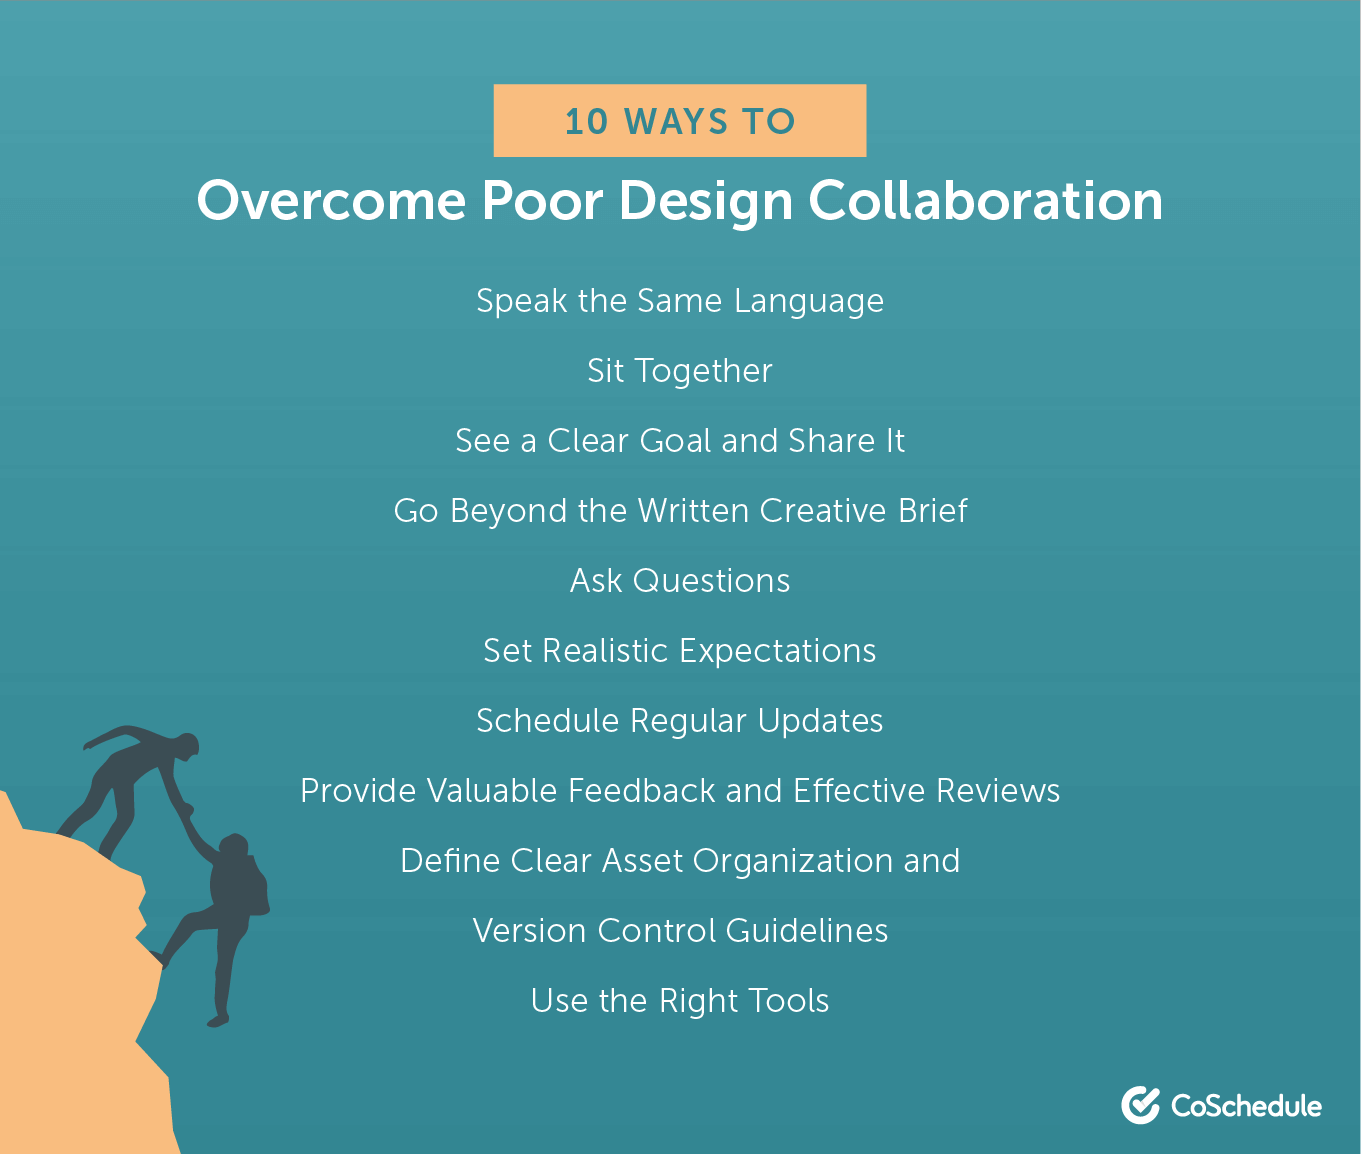 10 ways to overcome poor design collaboration